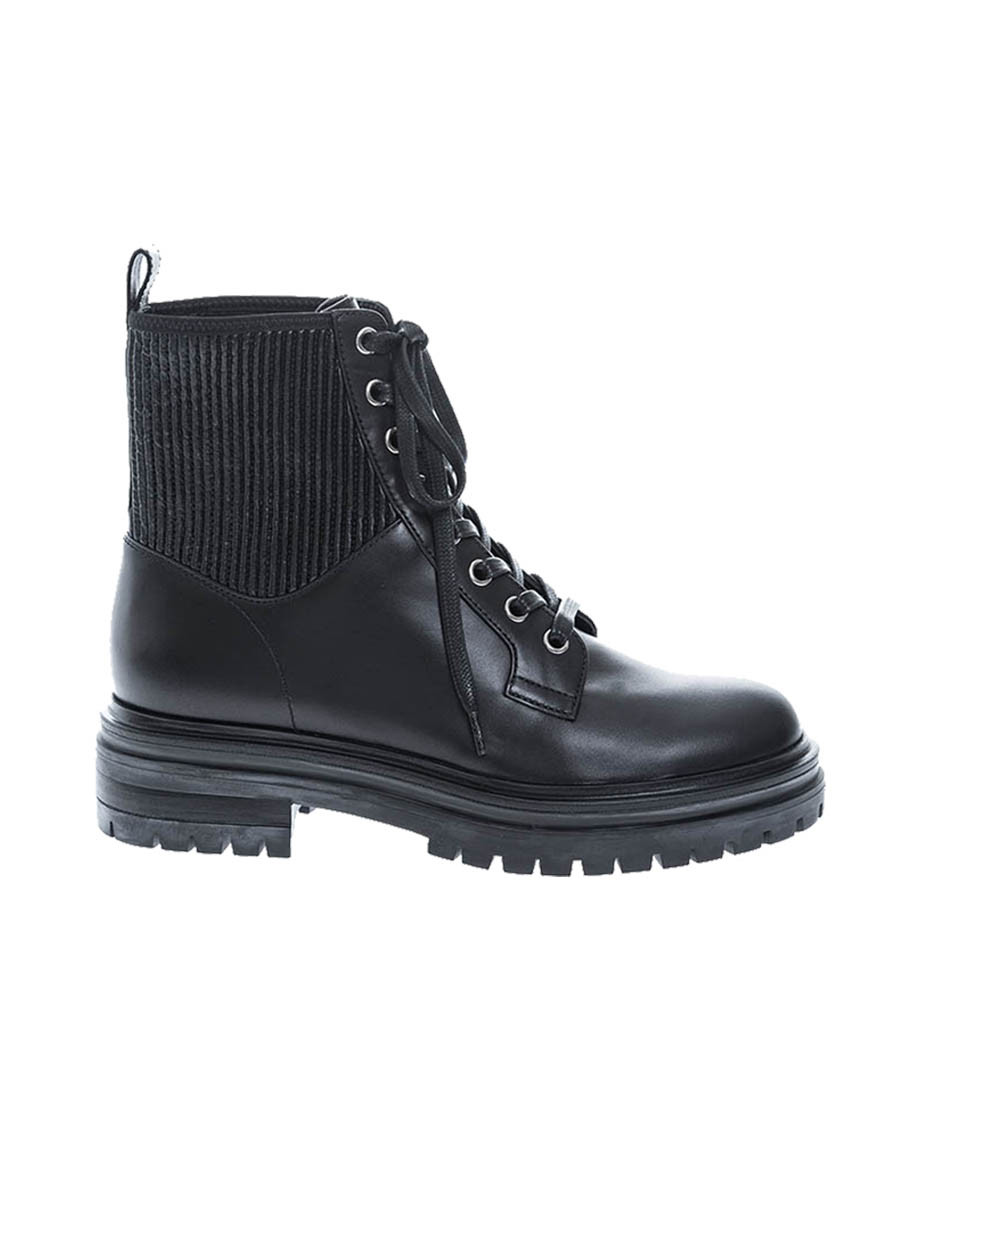 Leather boots with laces 20